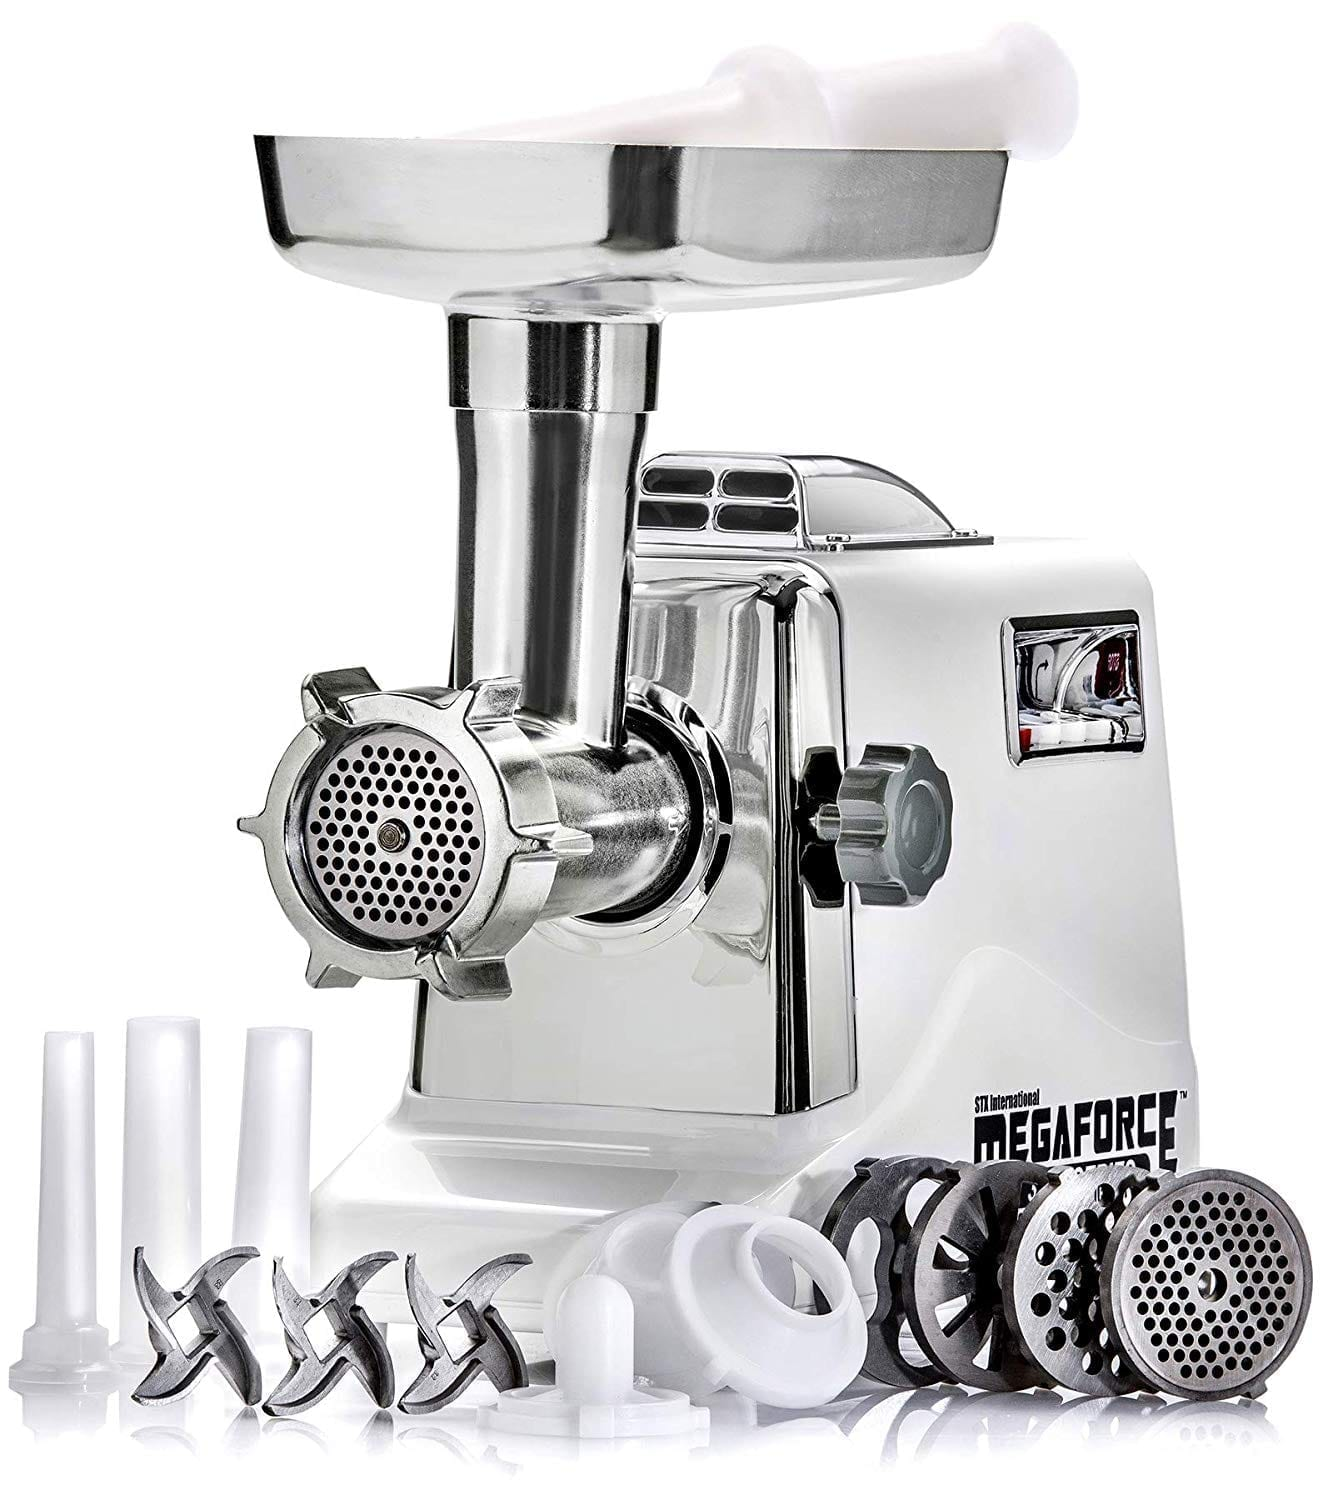 STX INTERNATIONAL STX-3000-MF Megaforce Electric Meat Grinder